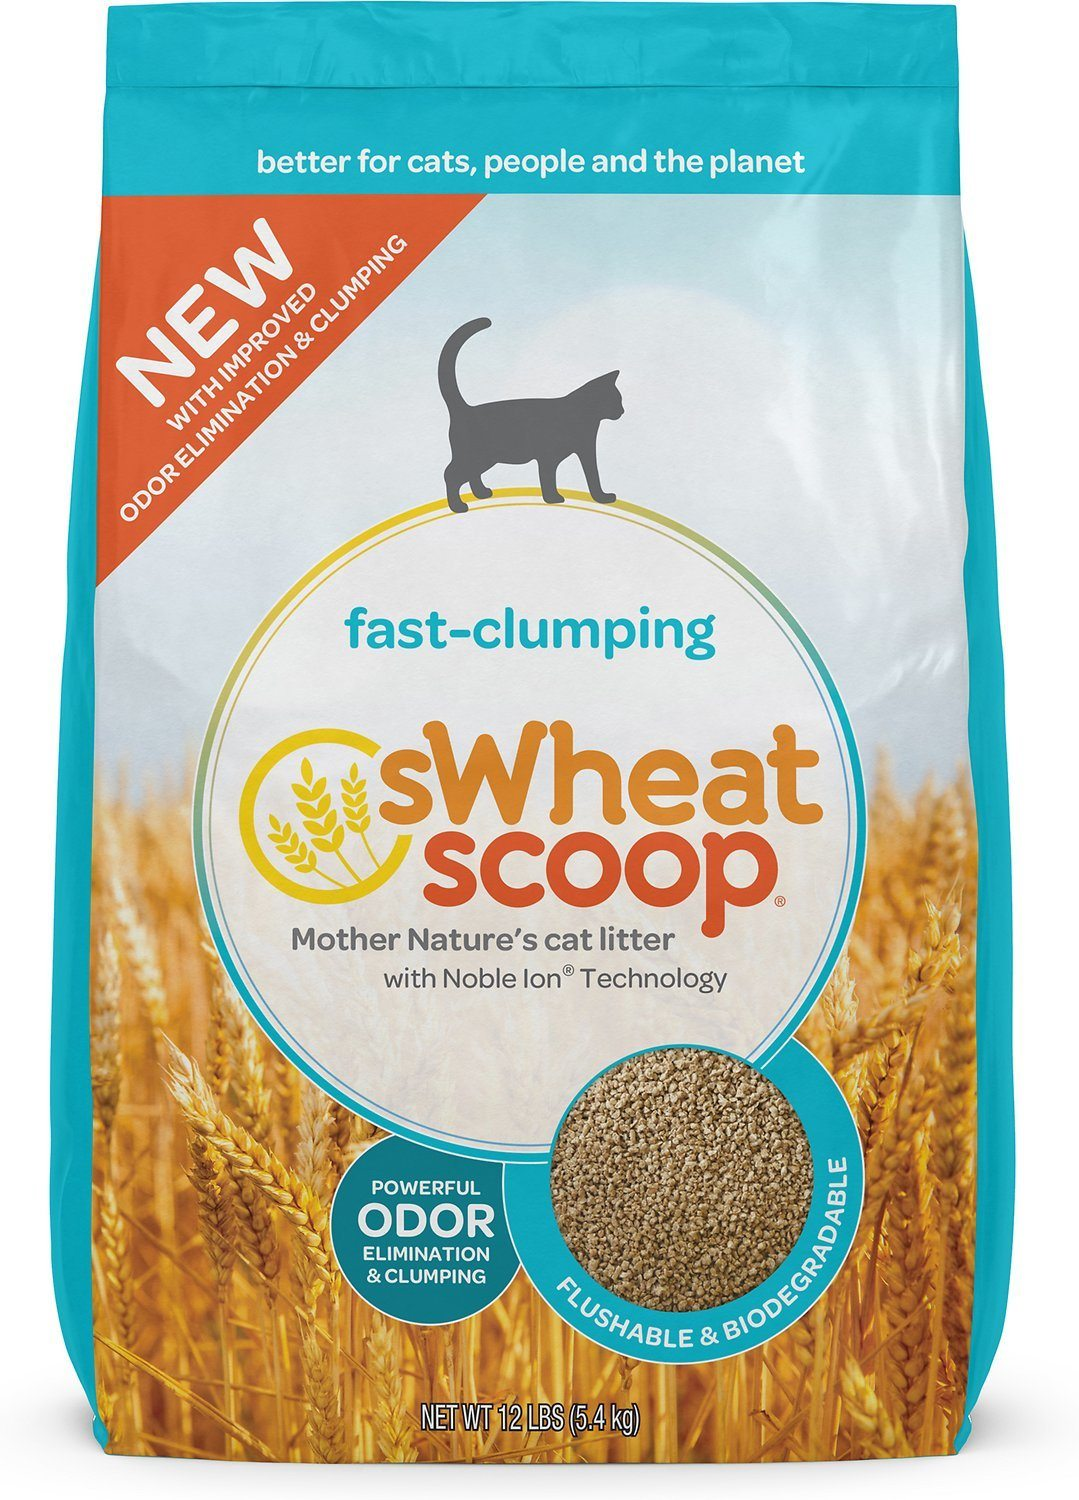 swheat scoop natural cat litter review